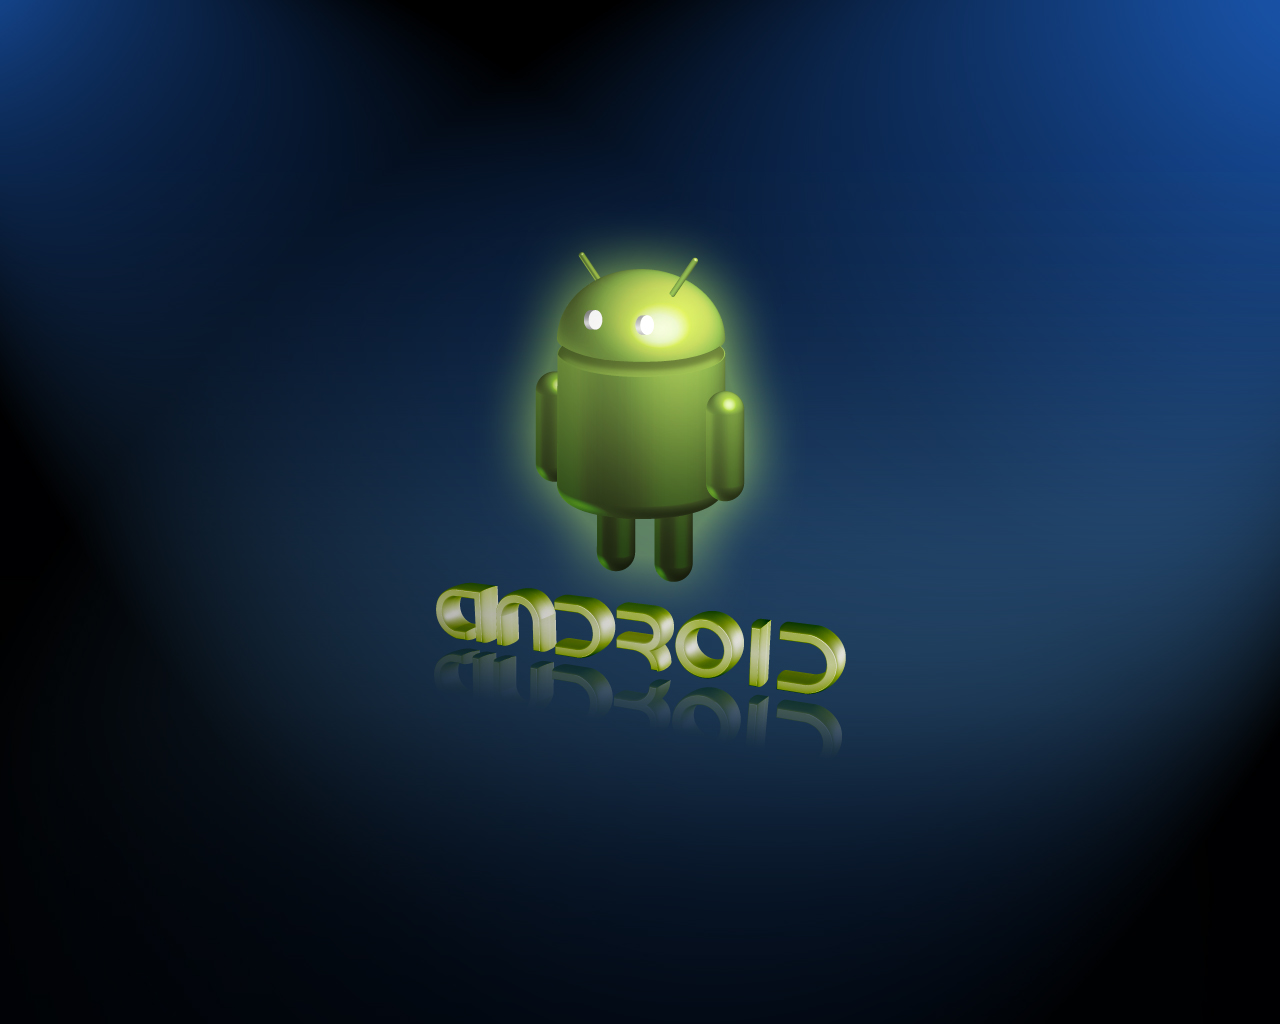 Android 3D Wallpaper By MAUXWEBMASTER On DeviantArt